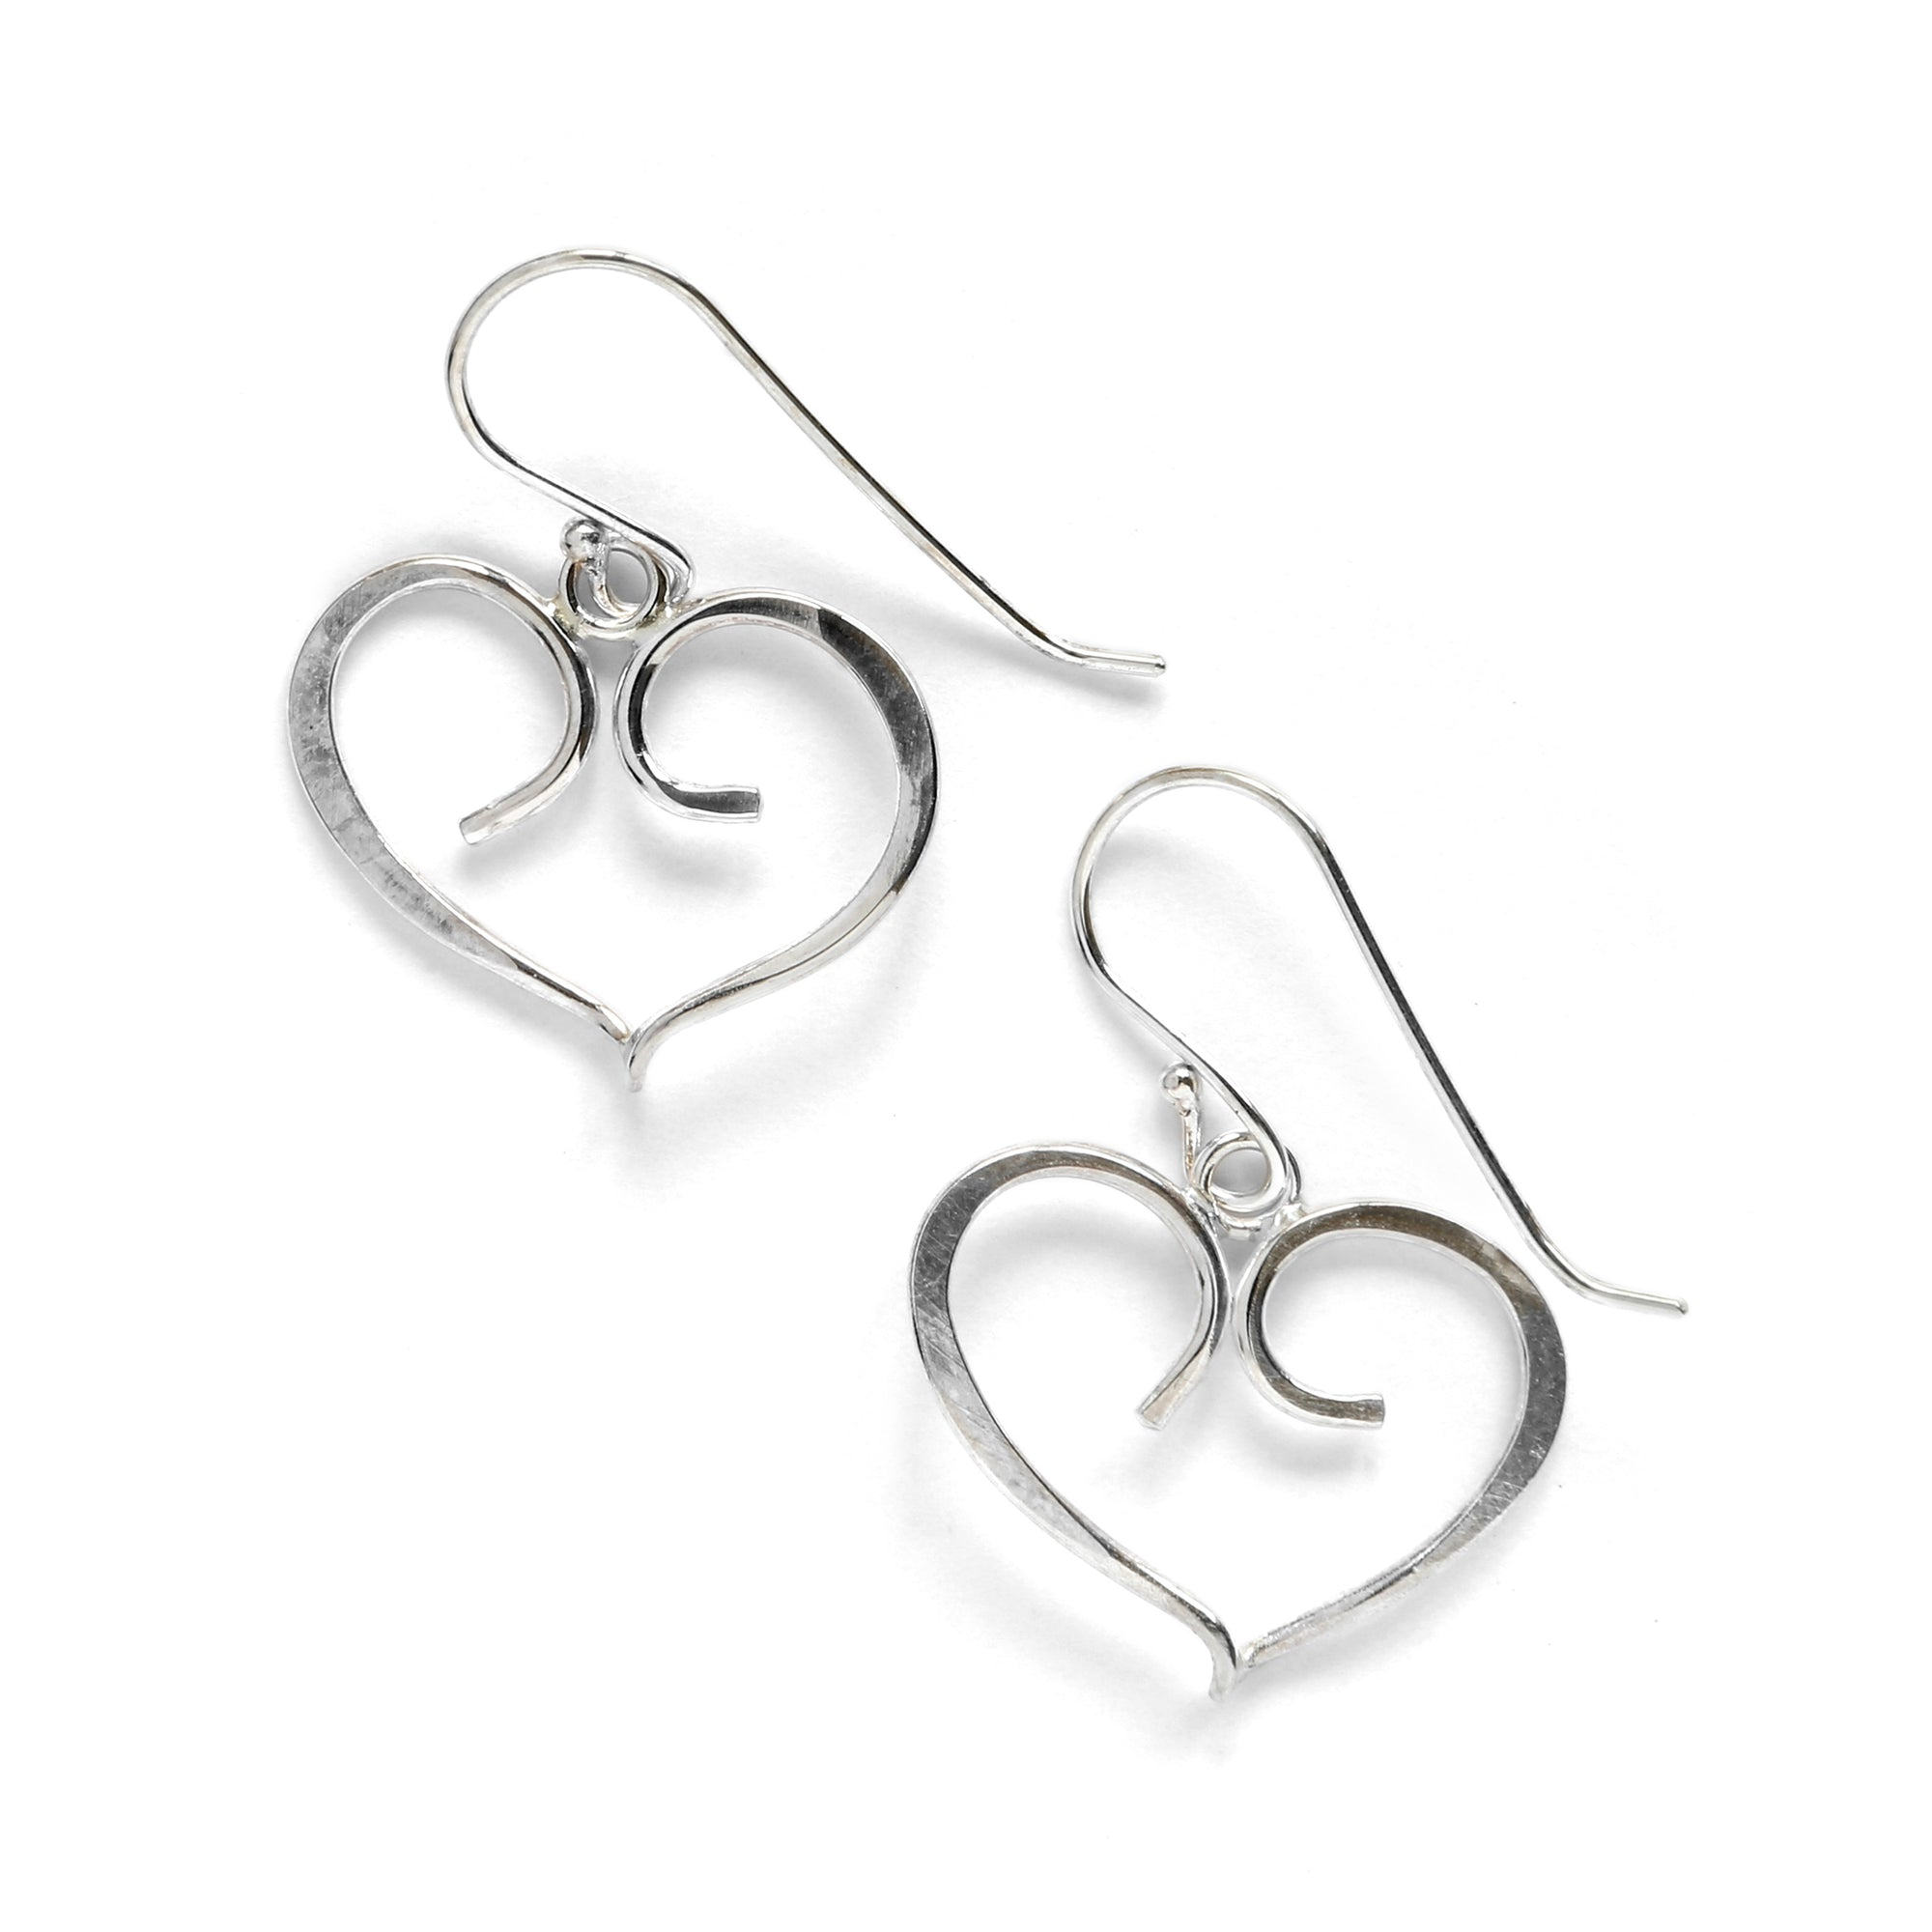 Forged Heart Earring